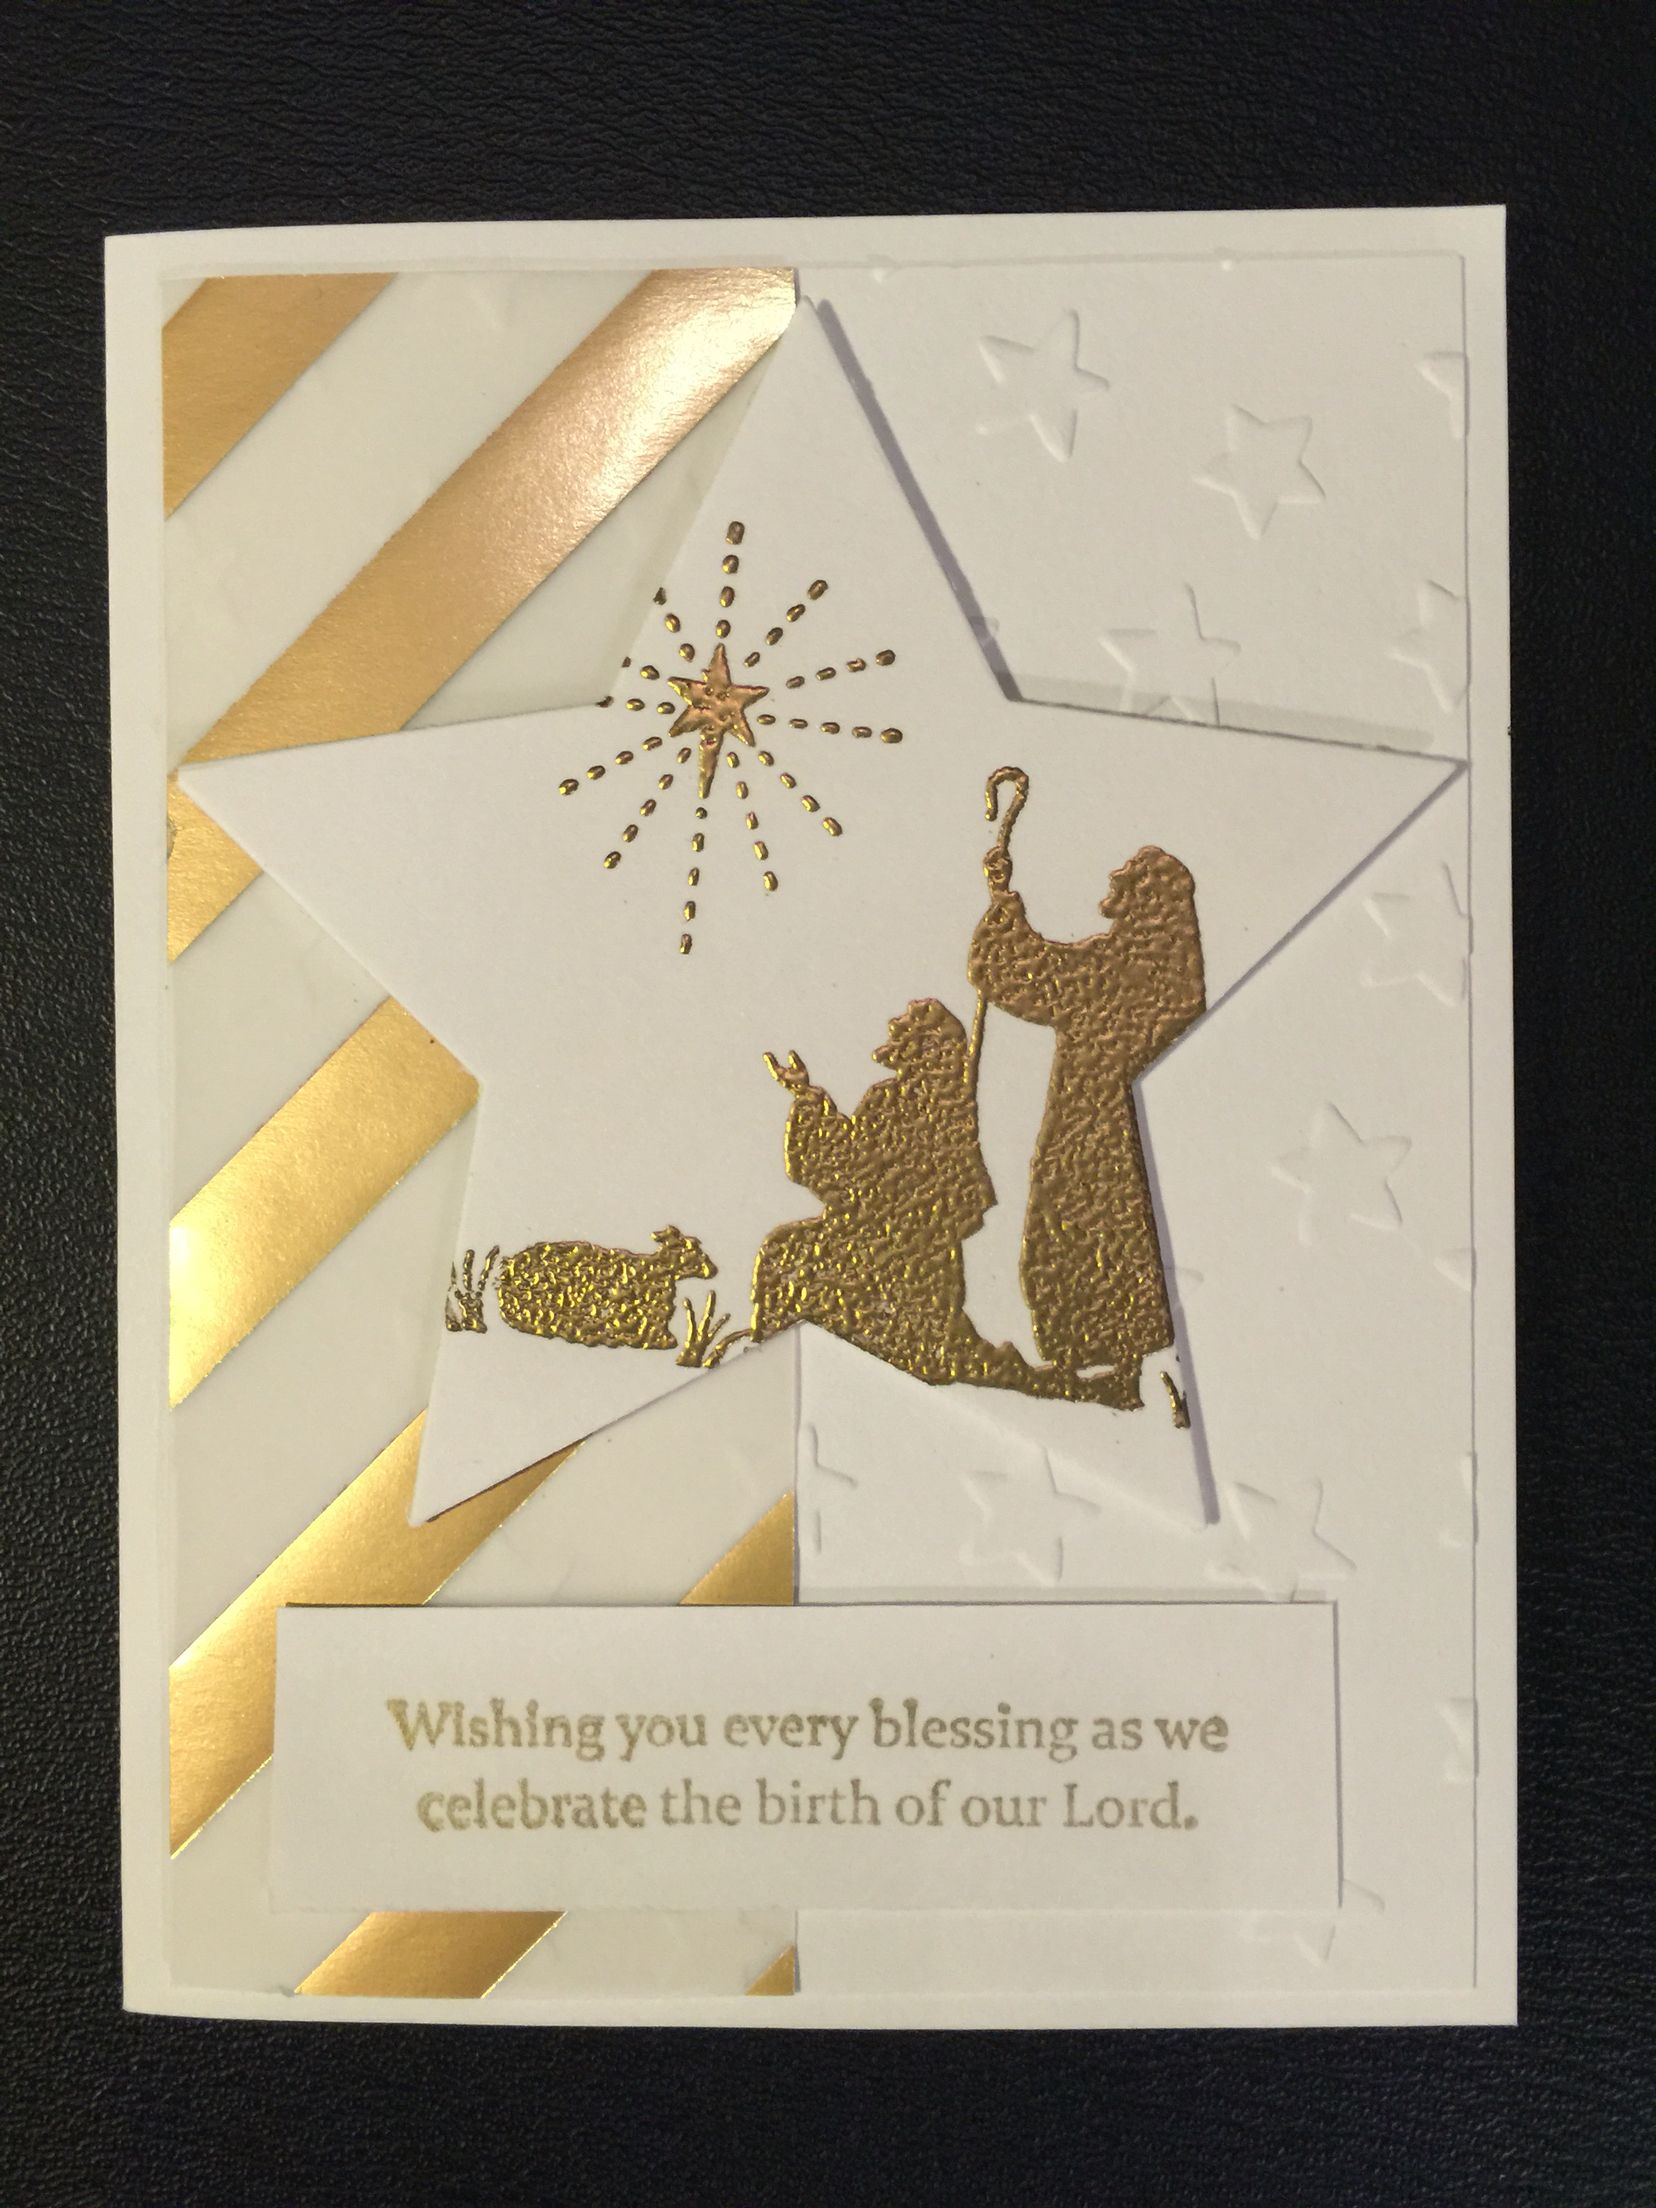 Every Blessing Gold Embossed Cards Religious Christmas